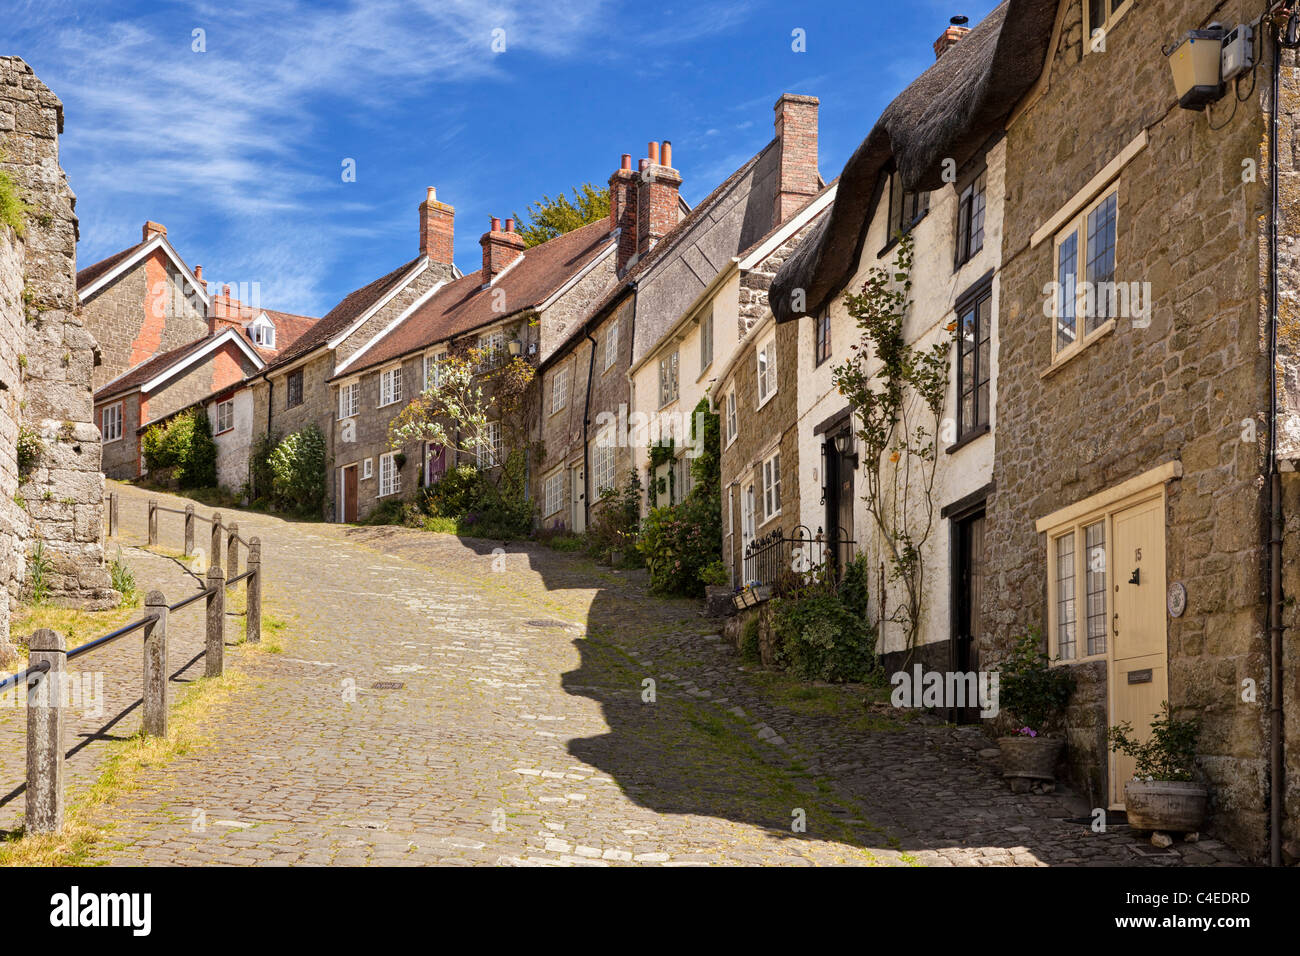 Traditional English houses on Gold Hill, Shaftesbury, Dorset, England, UK viewed from bottom of street - Stock Image